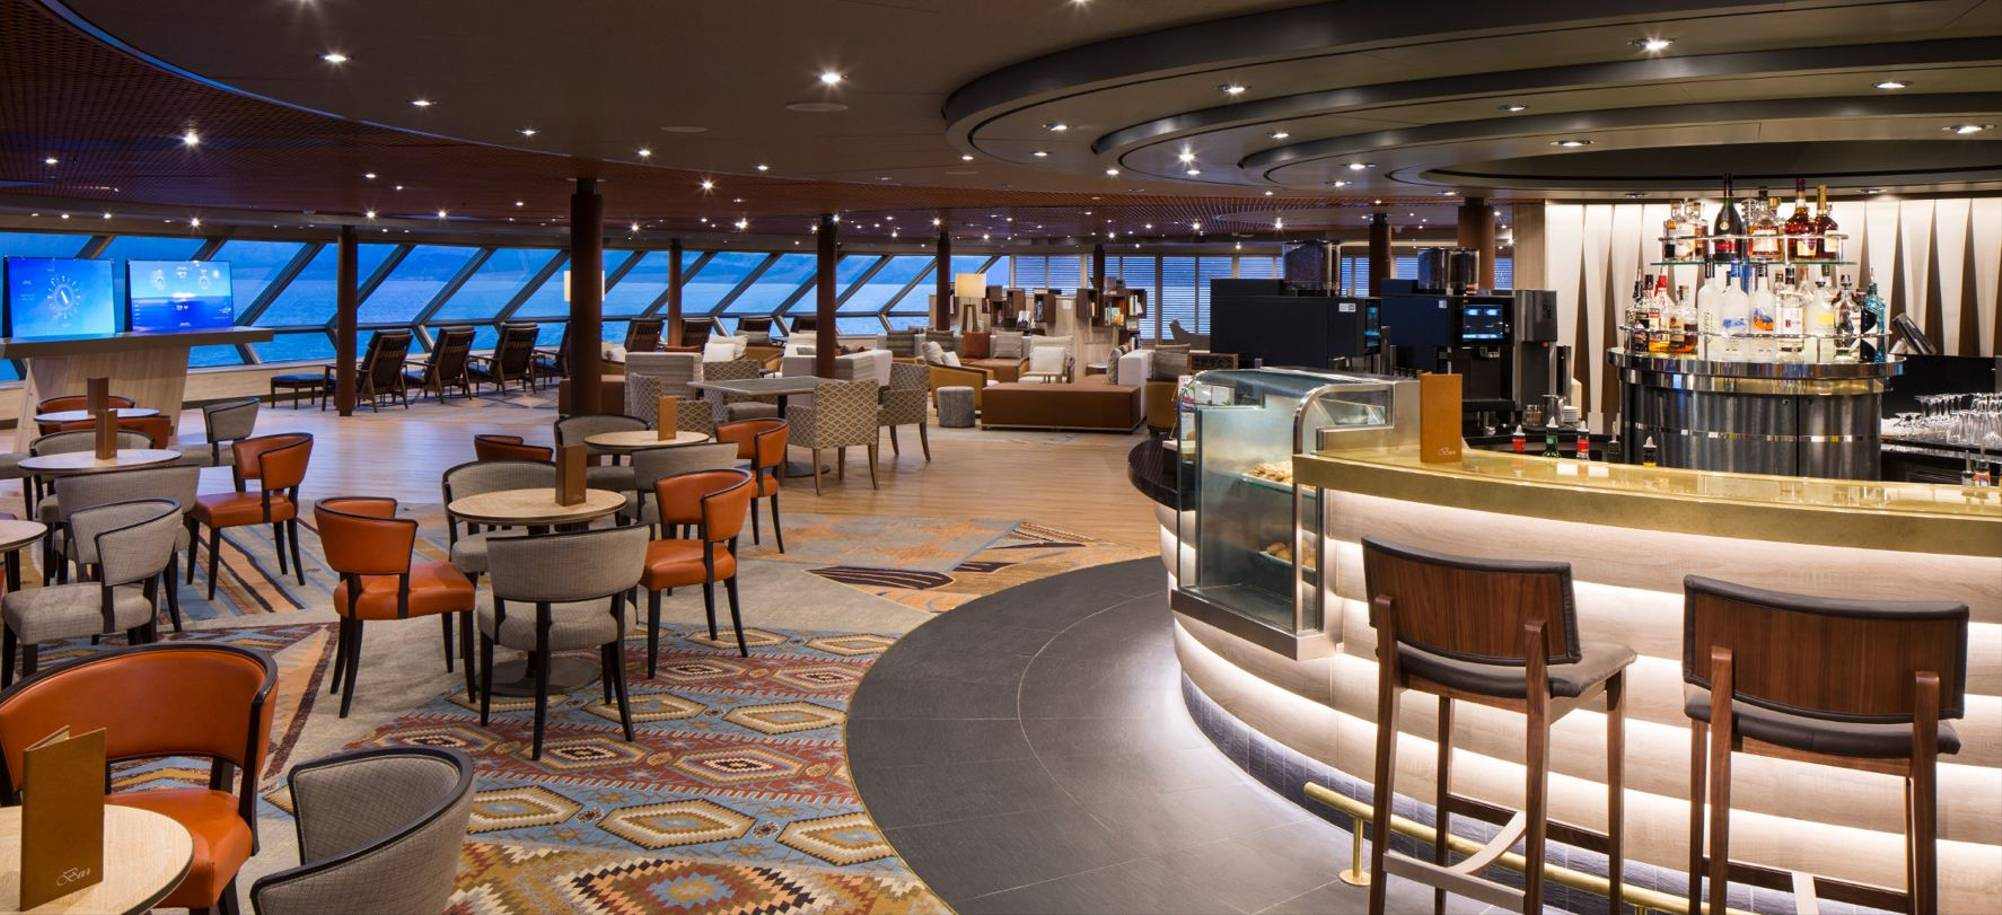 At Sea   Sip Cocktails In The Exploration Bar While Enjoying Views From The Crow'S Nest   Itinerary Desktop